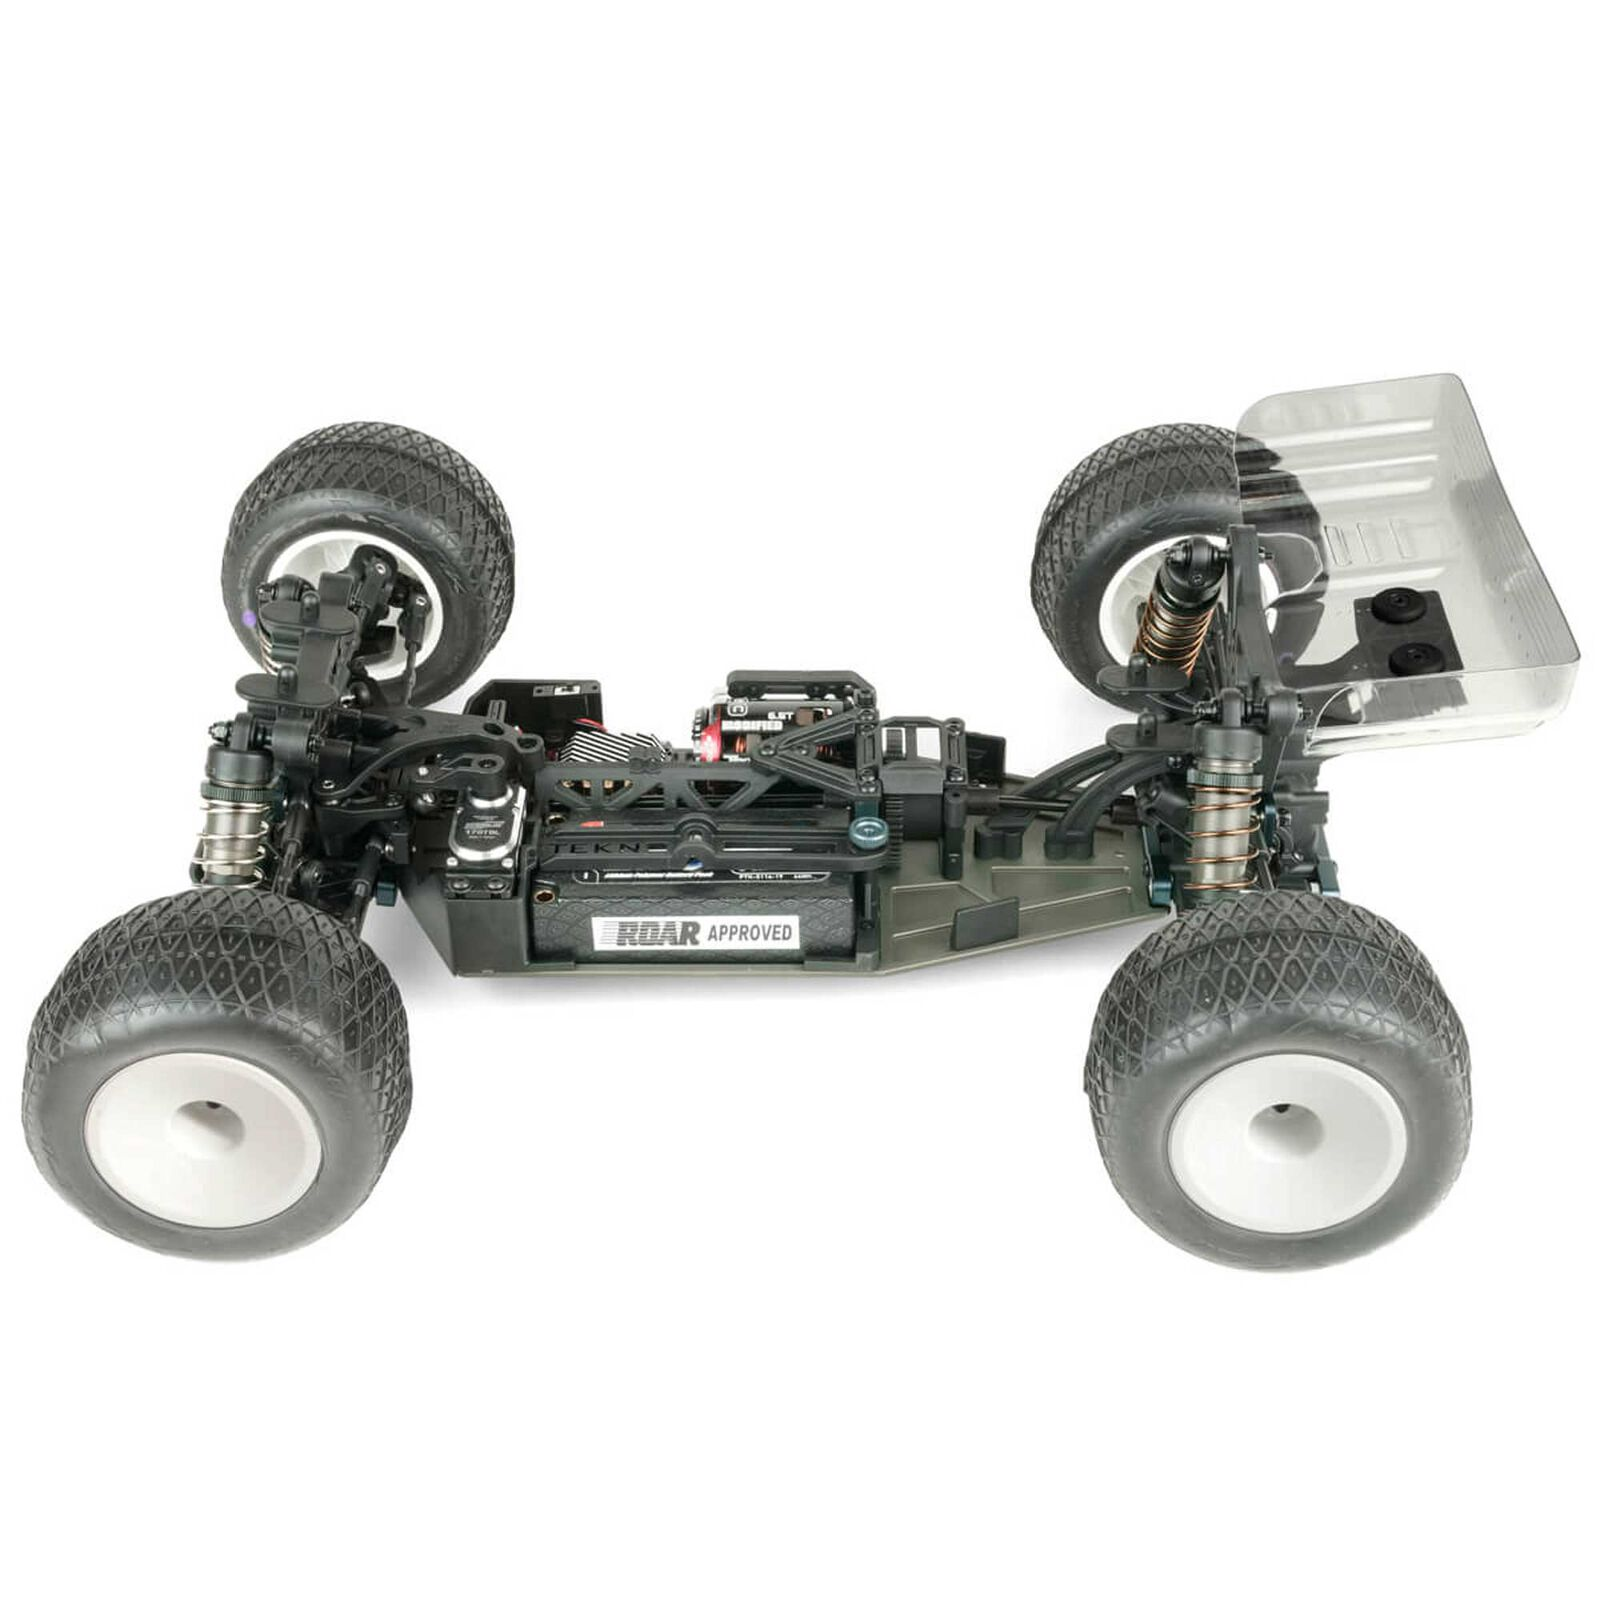 1/10th ET410.2 4WD Competition Electric Truggy Kit